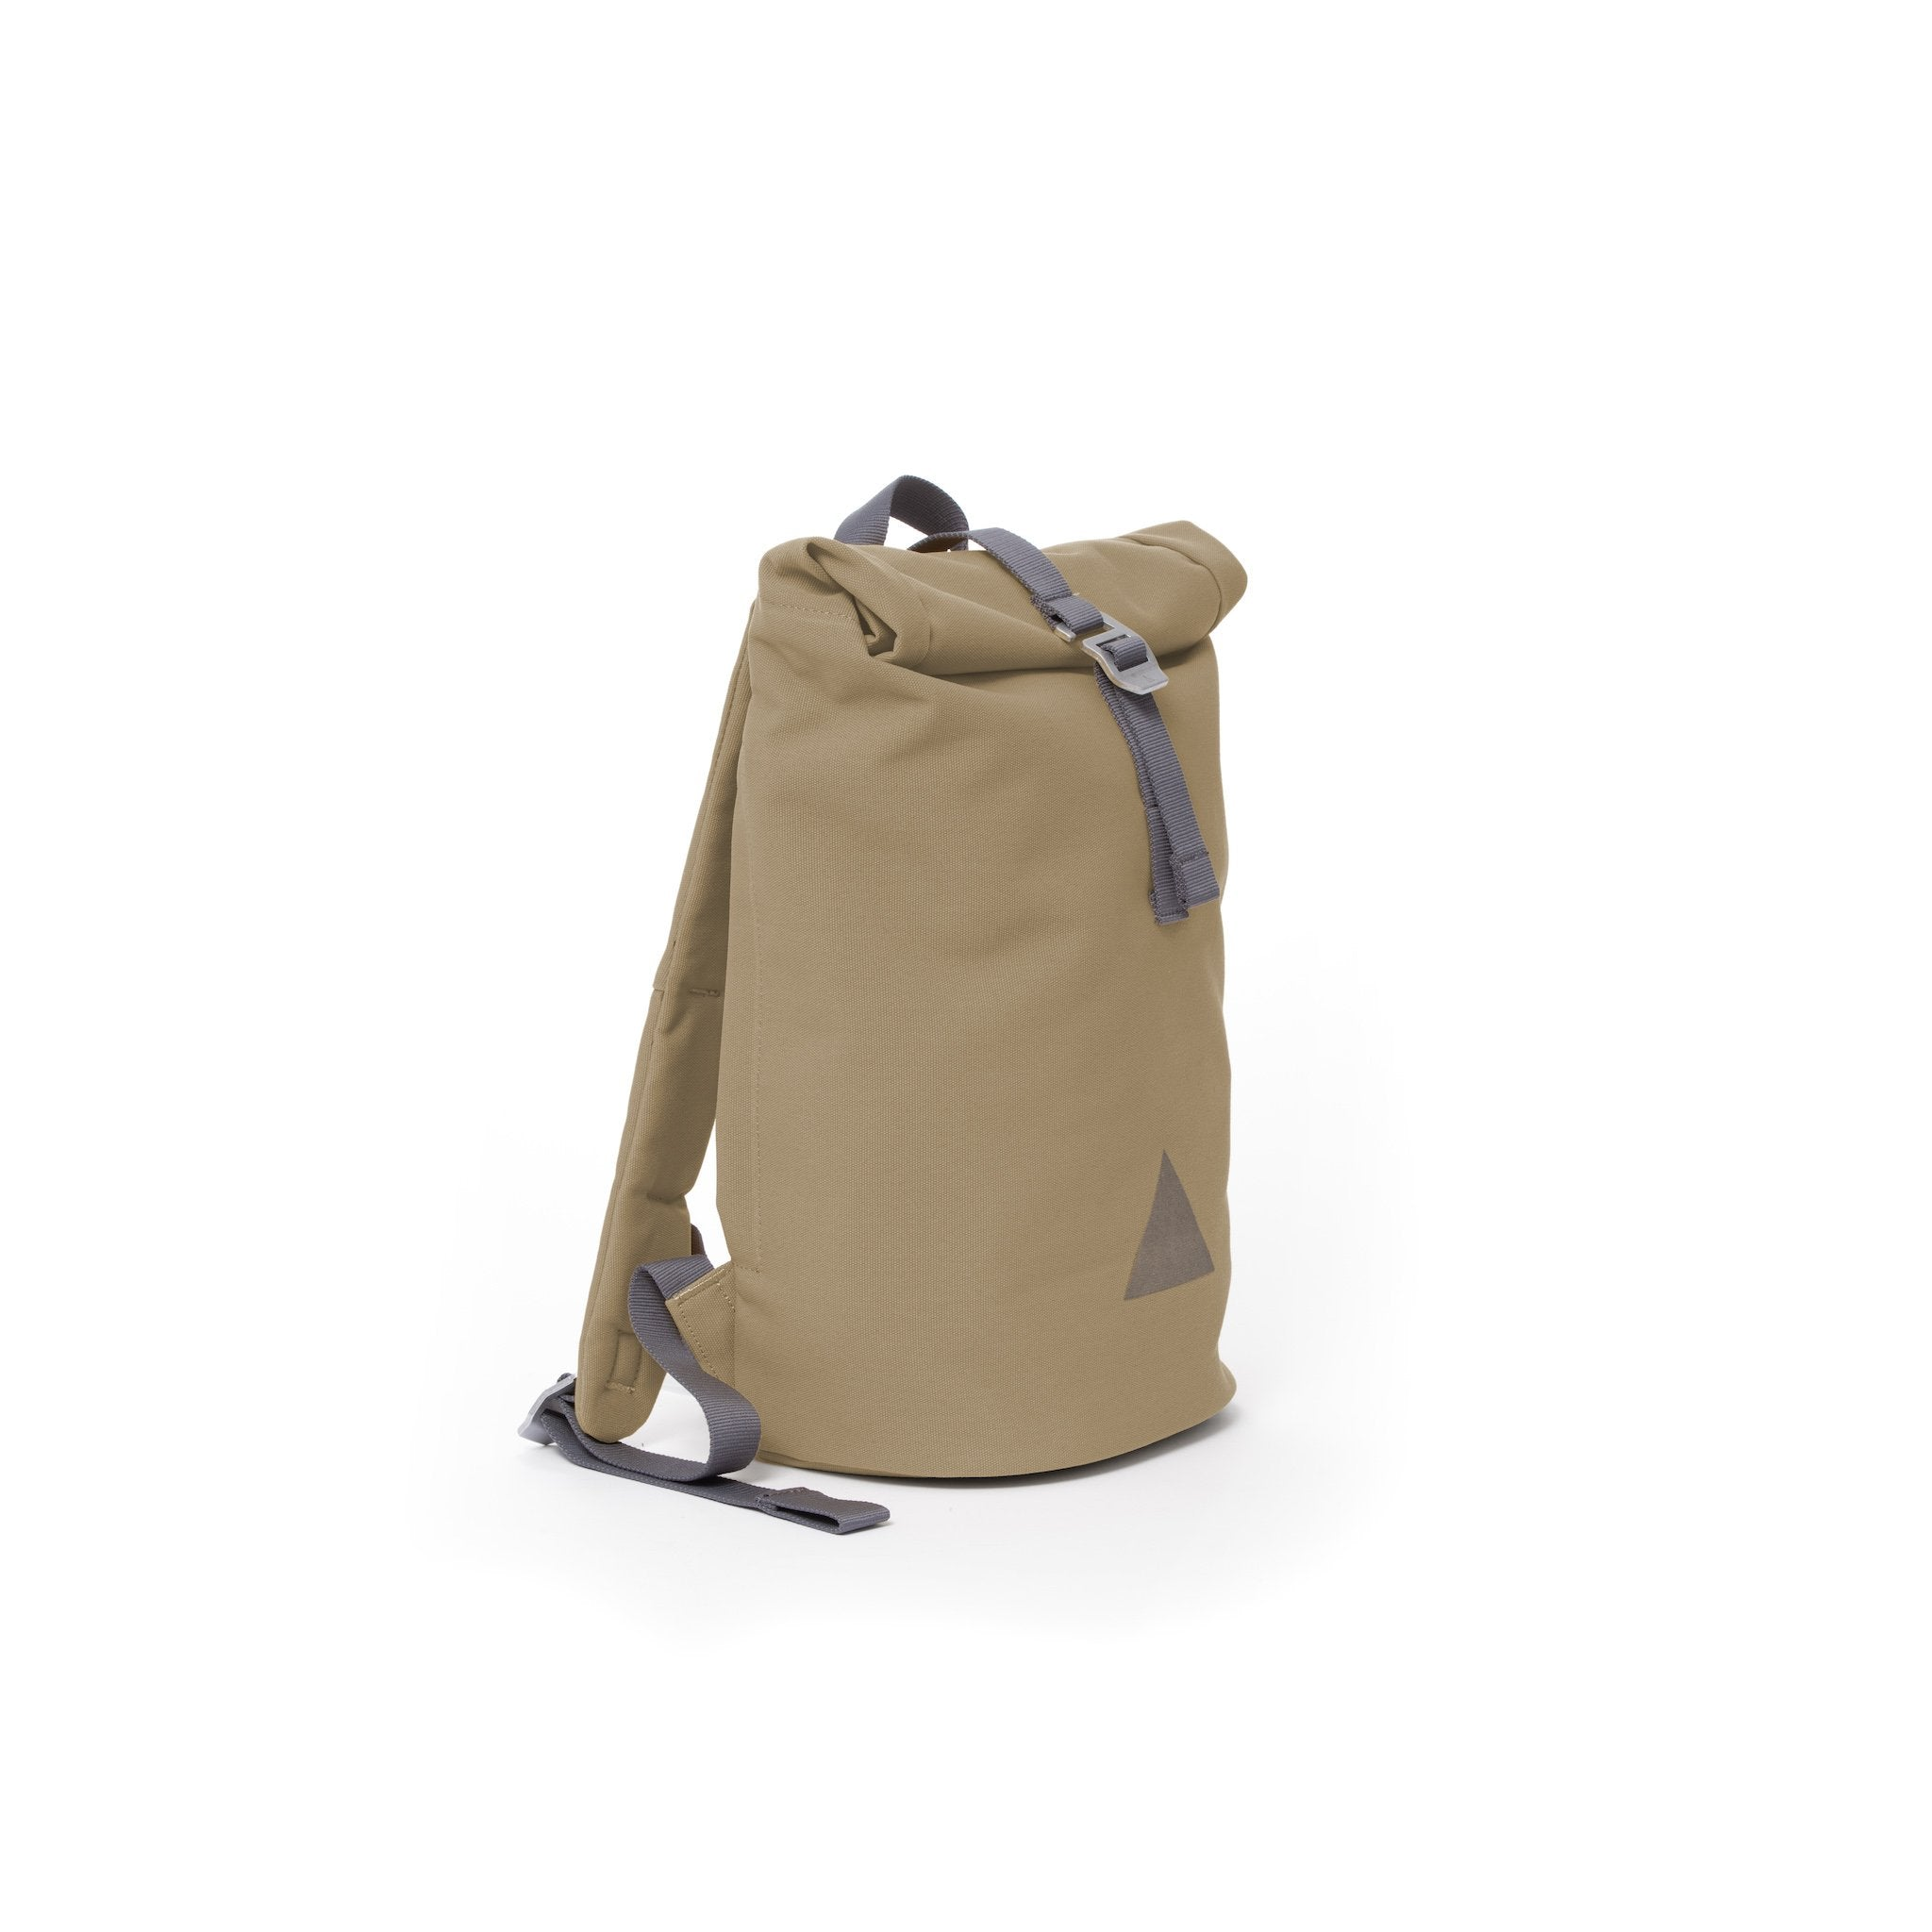 Khaki recycled canvas women's rolltop backpack.